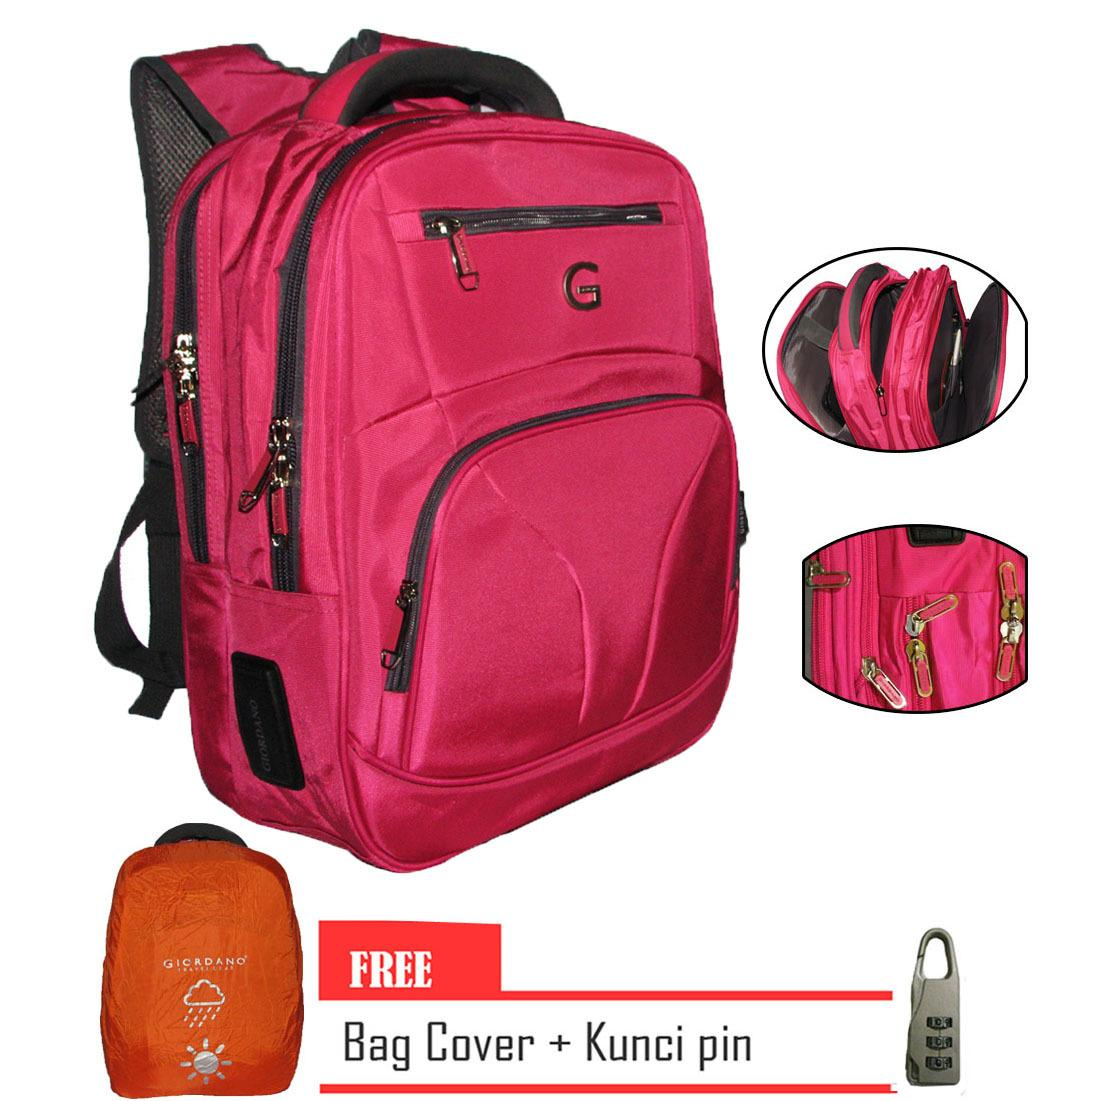 Diskon Produk Giordano Backpack Laptop Original Import Free Pink Dengan Kunci Pin